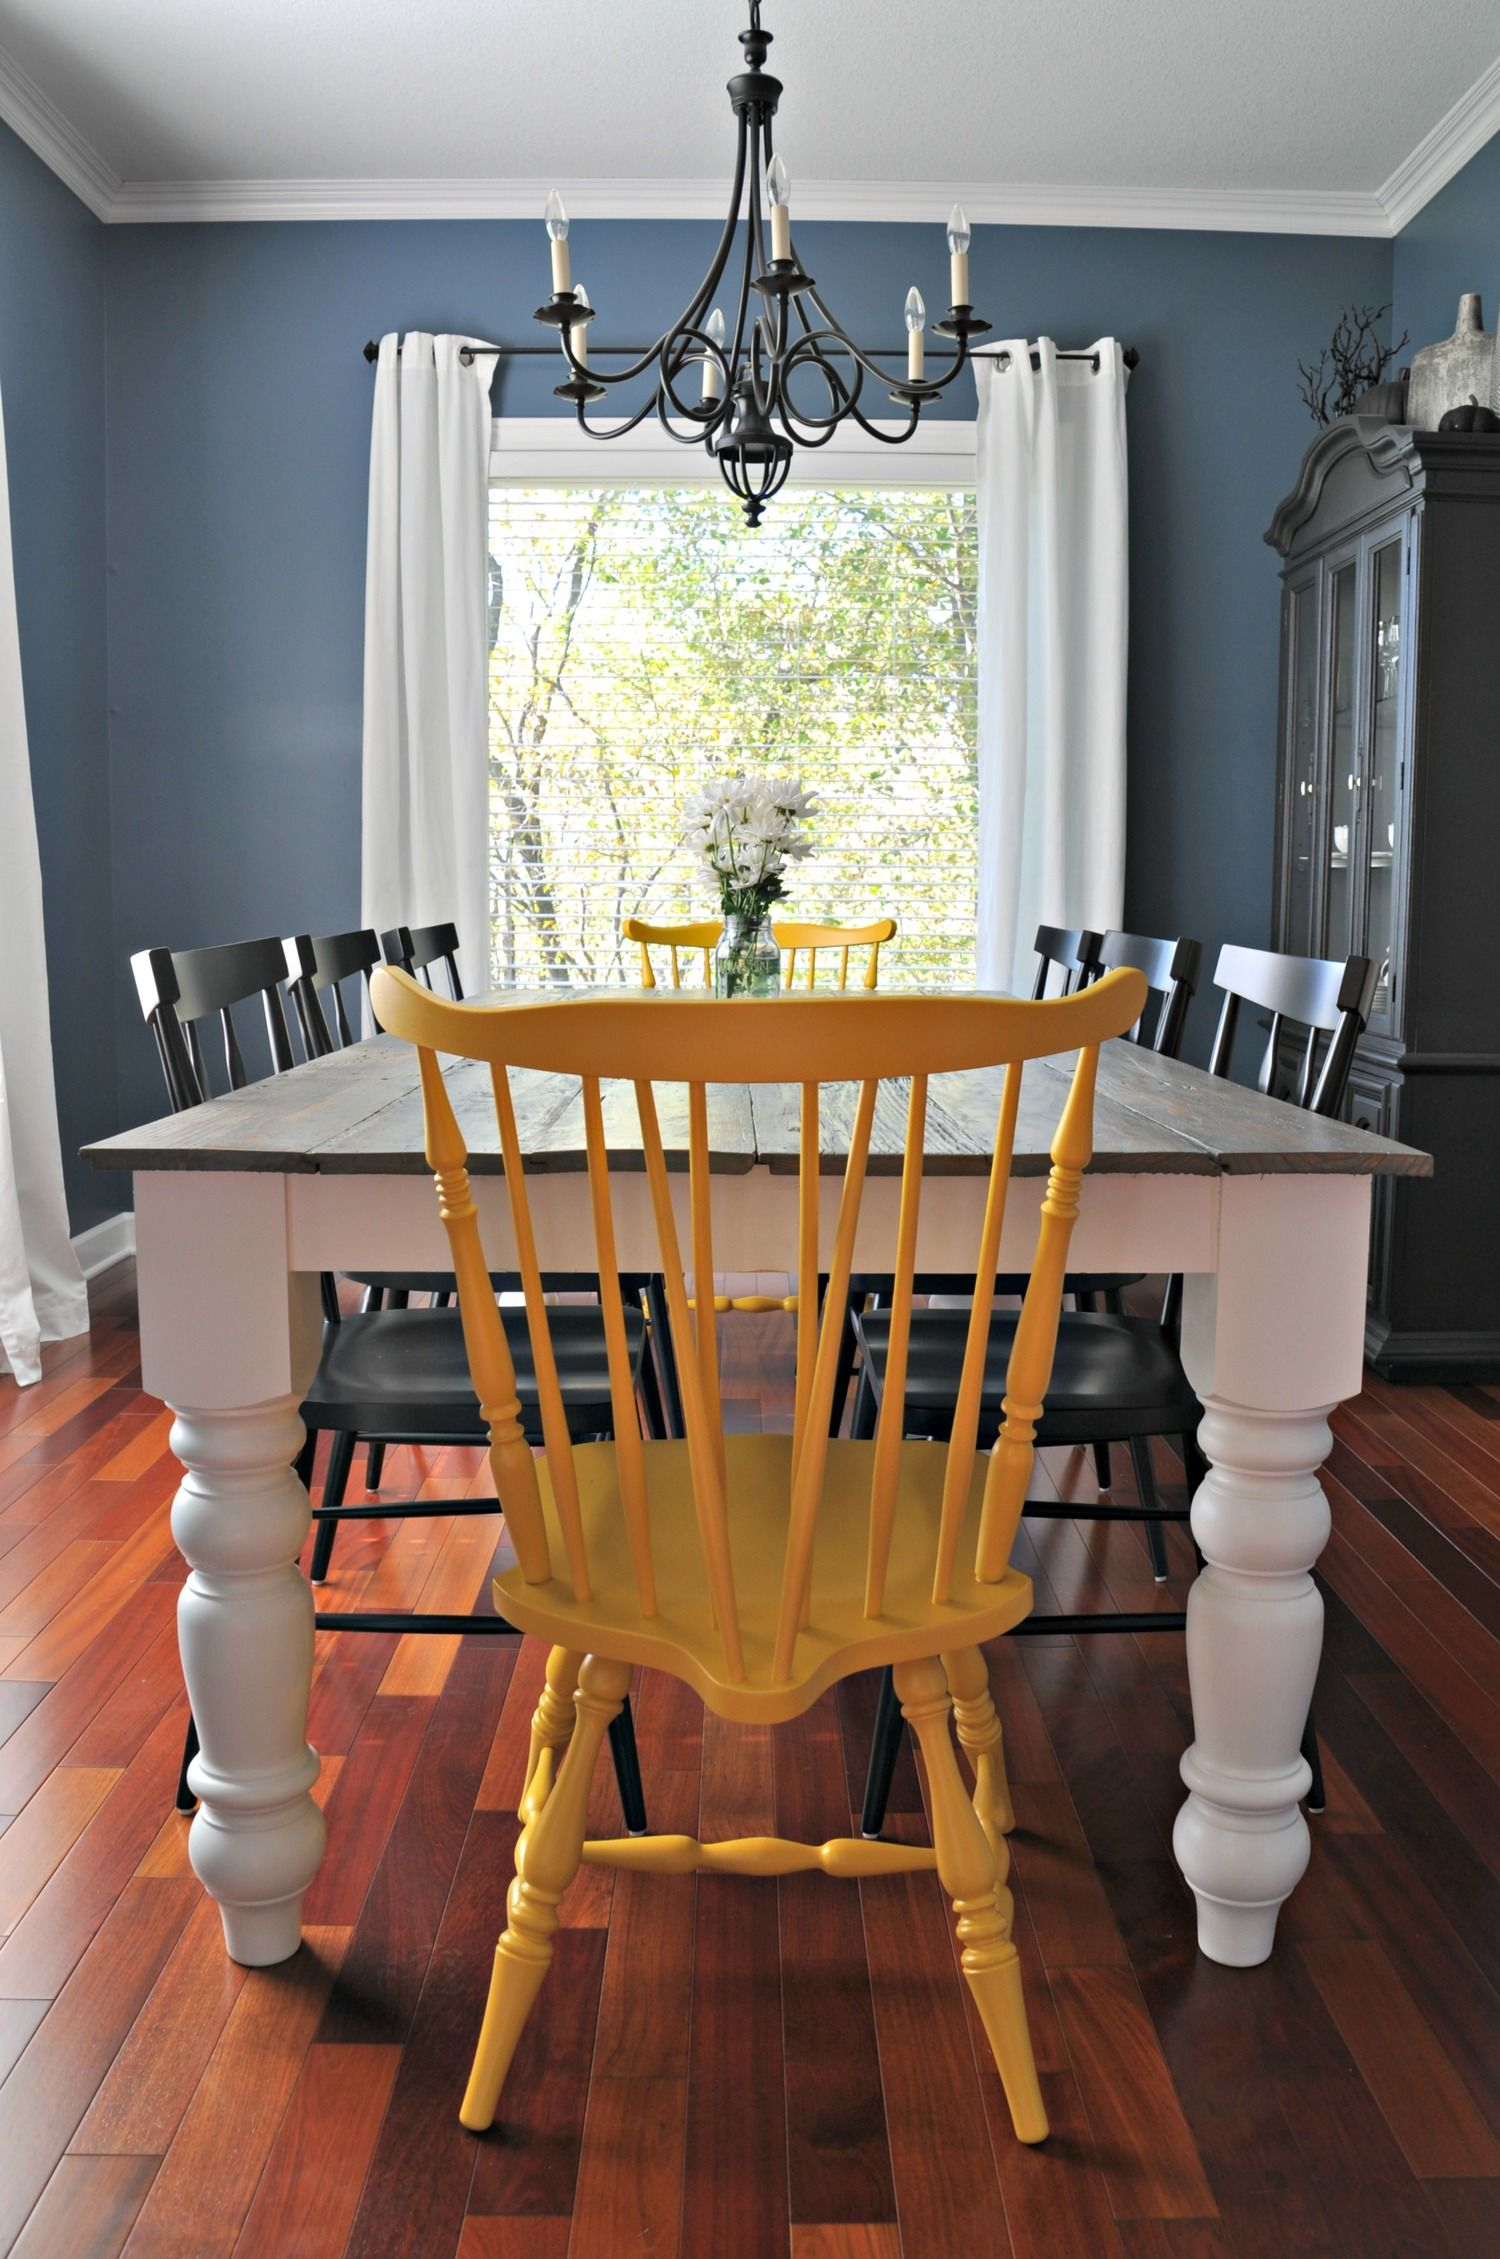 Free Farmhouse Dining Table Plans | Home: Dining room | Diy ...